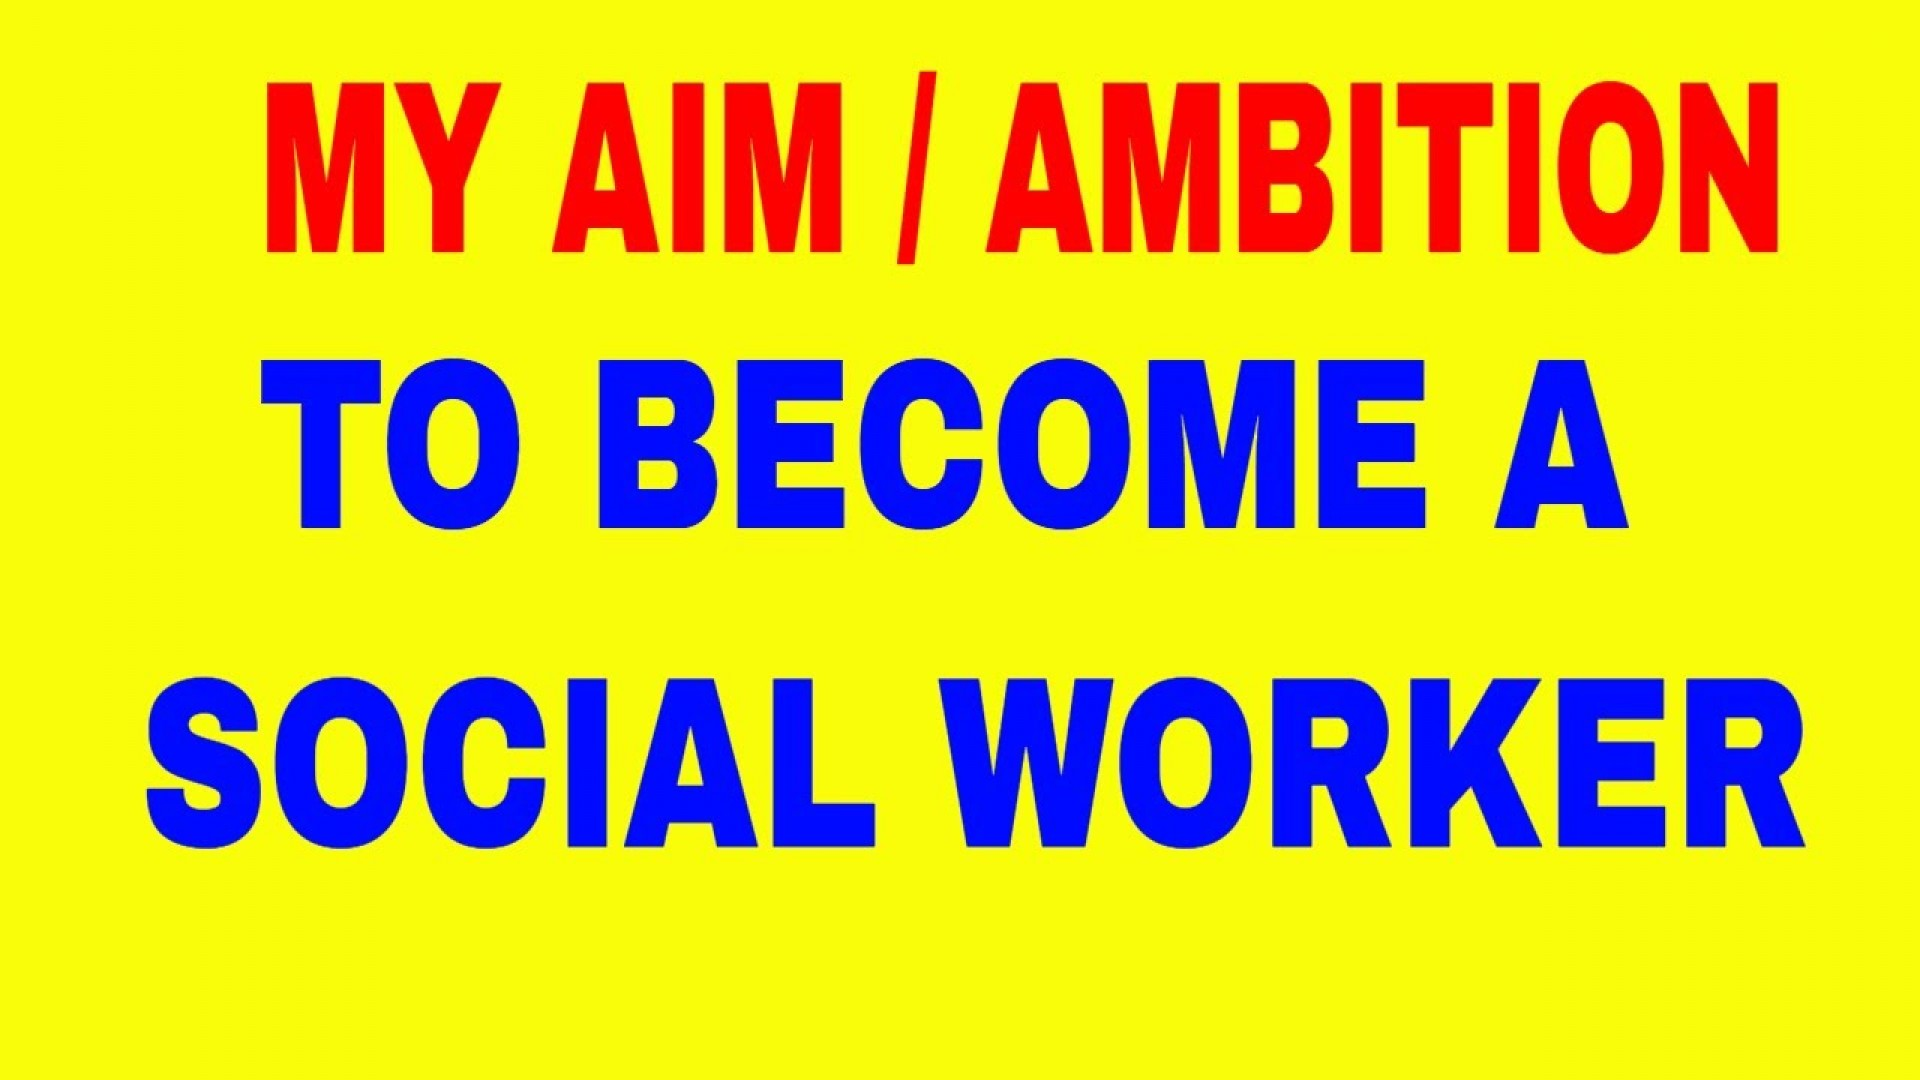 007 Maxresdefault Why I Want To Social Worker Essay Outstanding Be A Study Work Do Become Became 1920